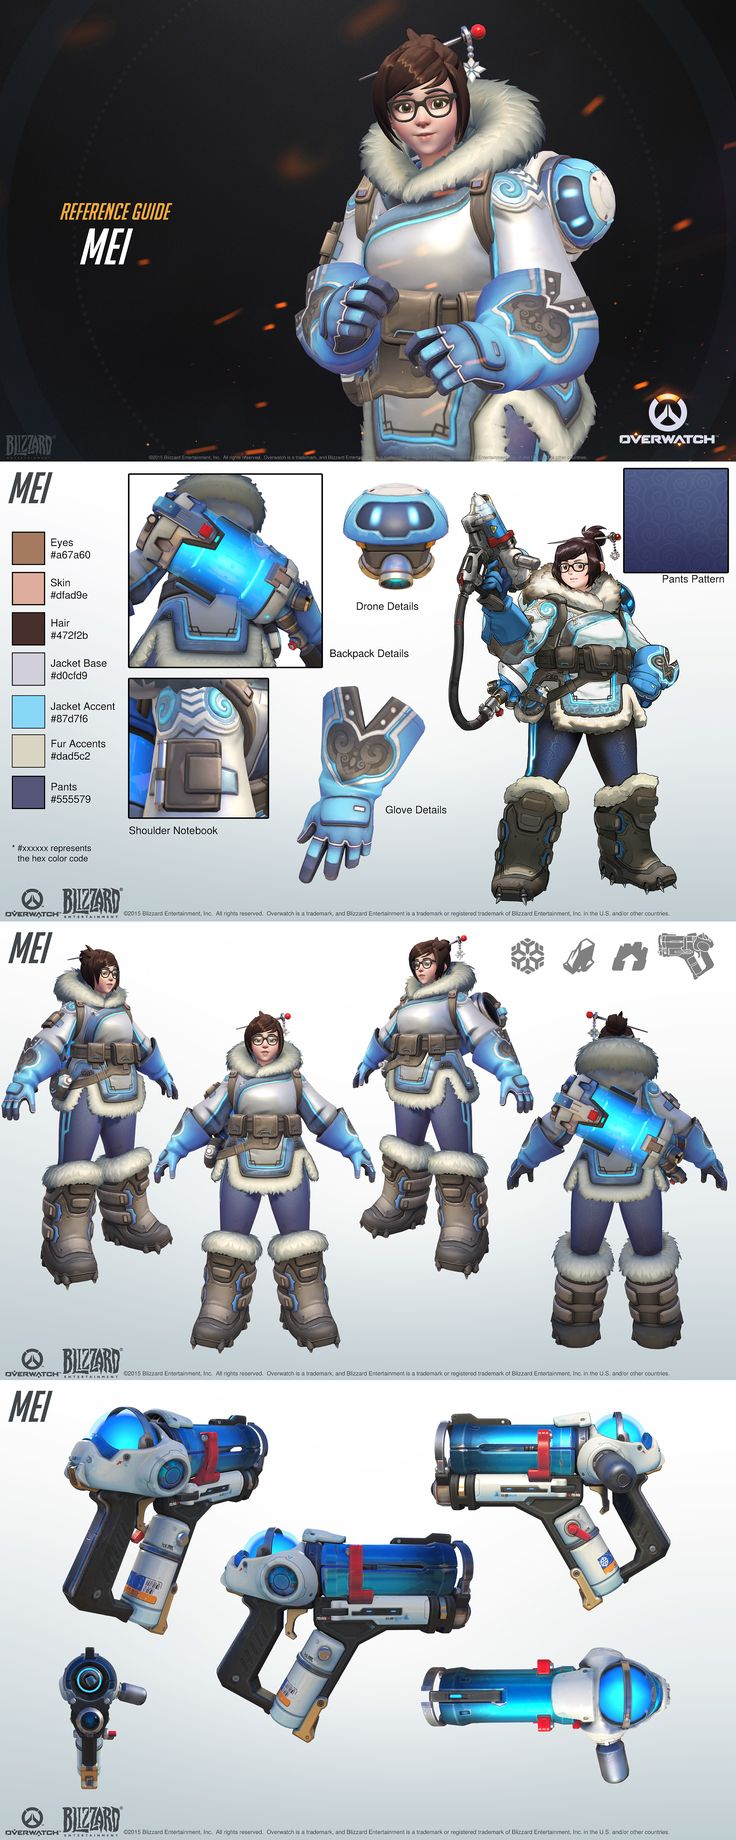 Overwatch - Mei Reference Guide #overwatch #character #design